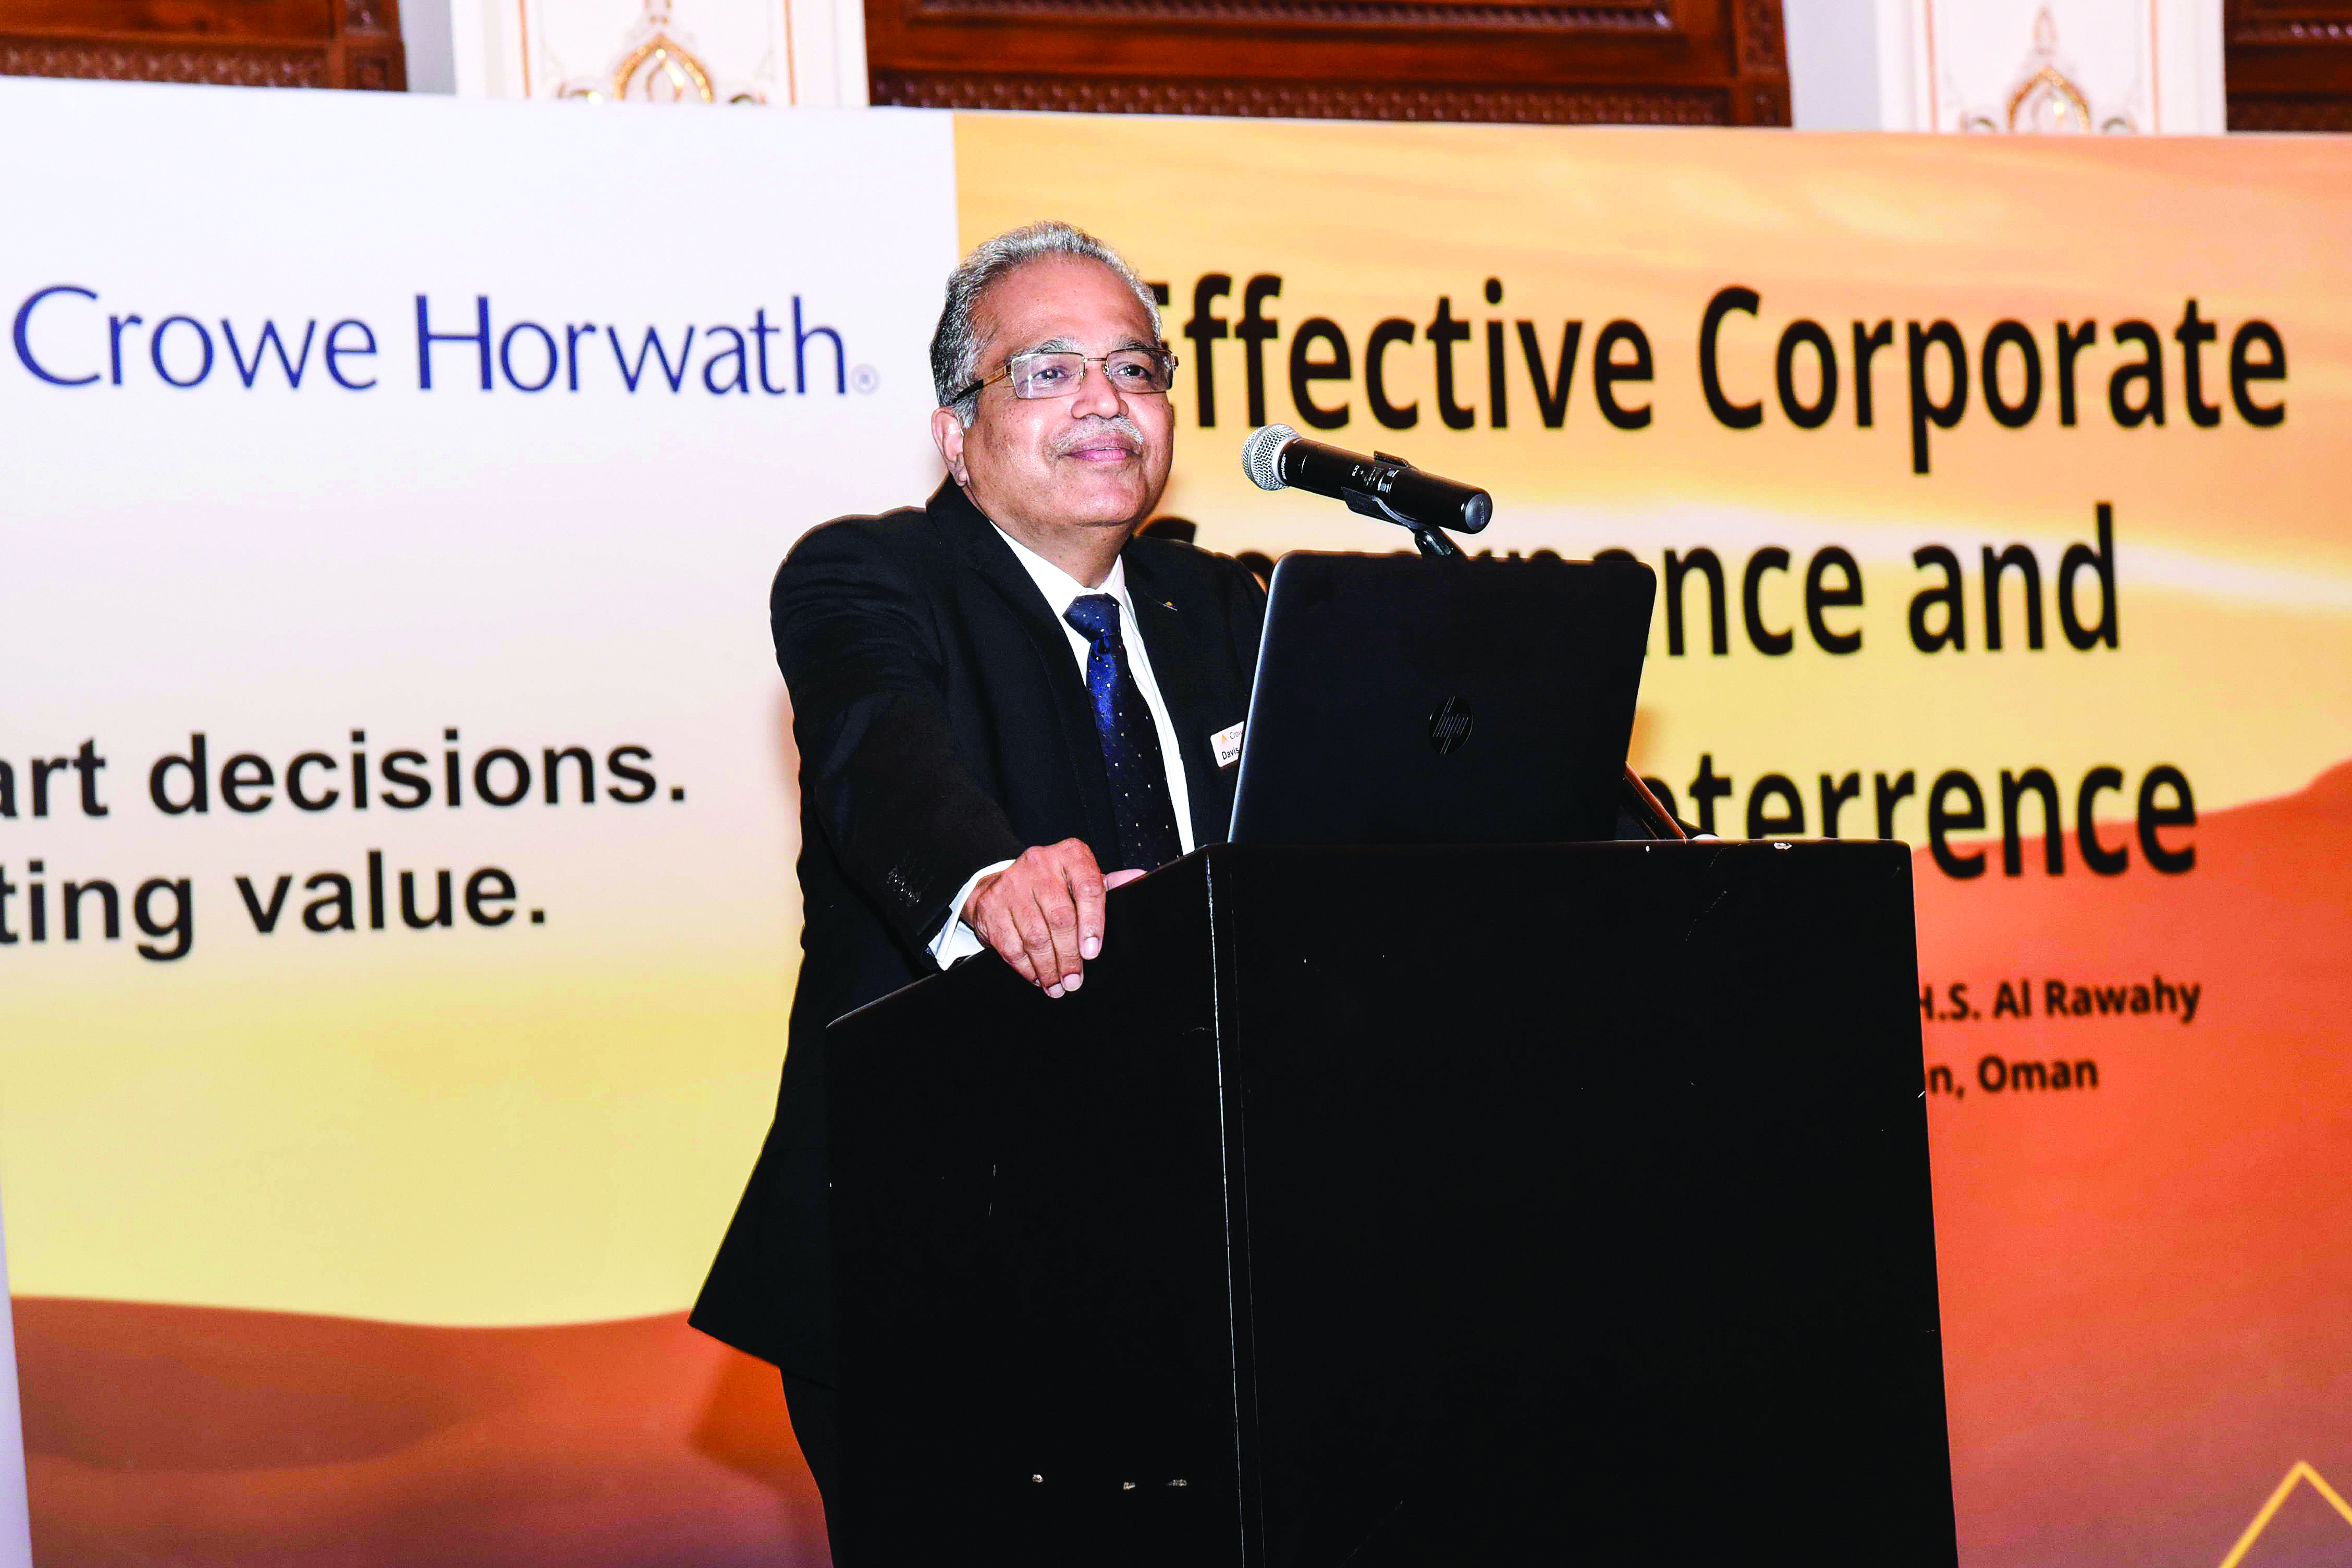 Audit firm calls for effective corporate governance